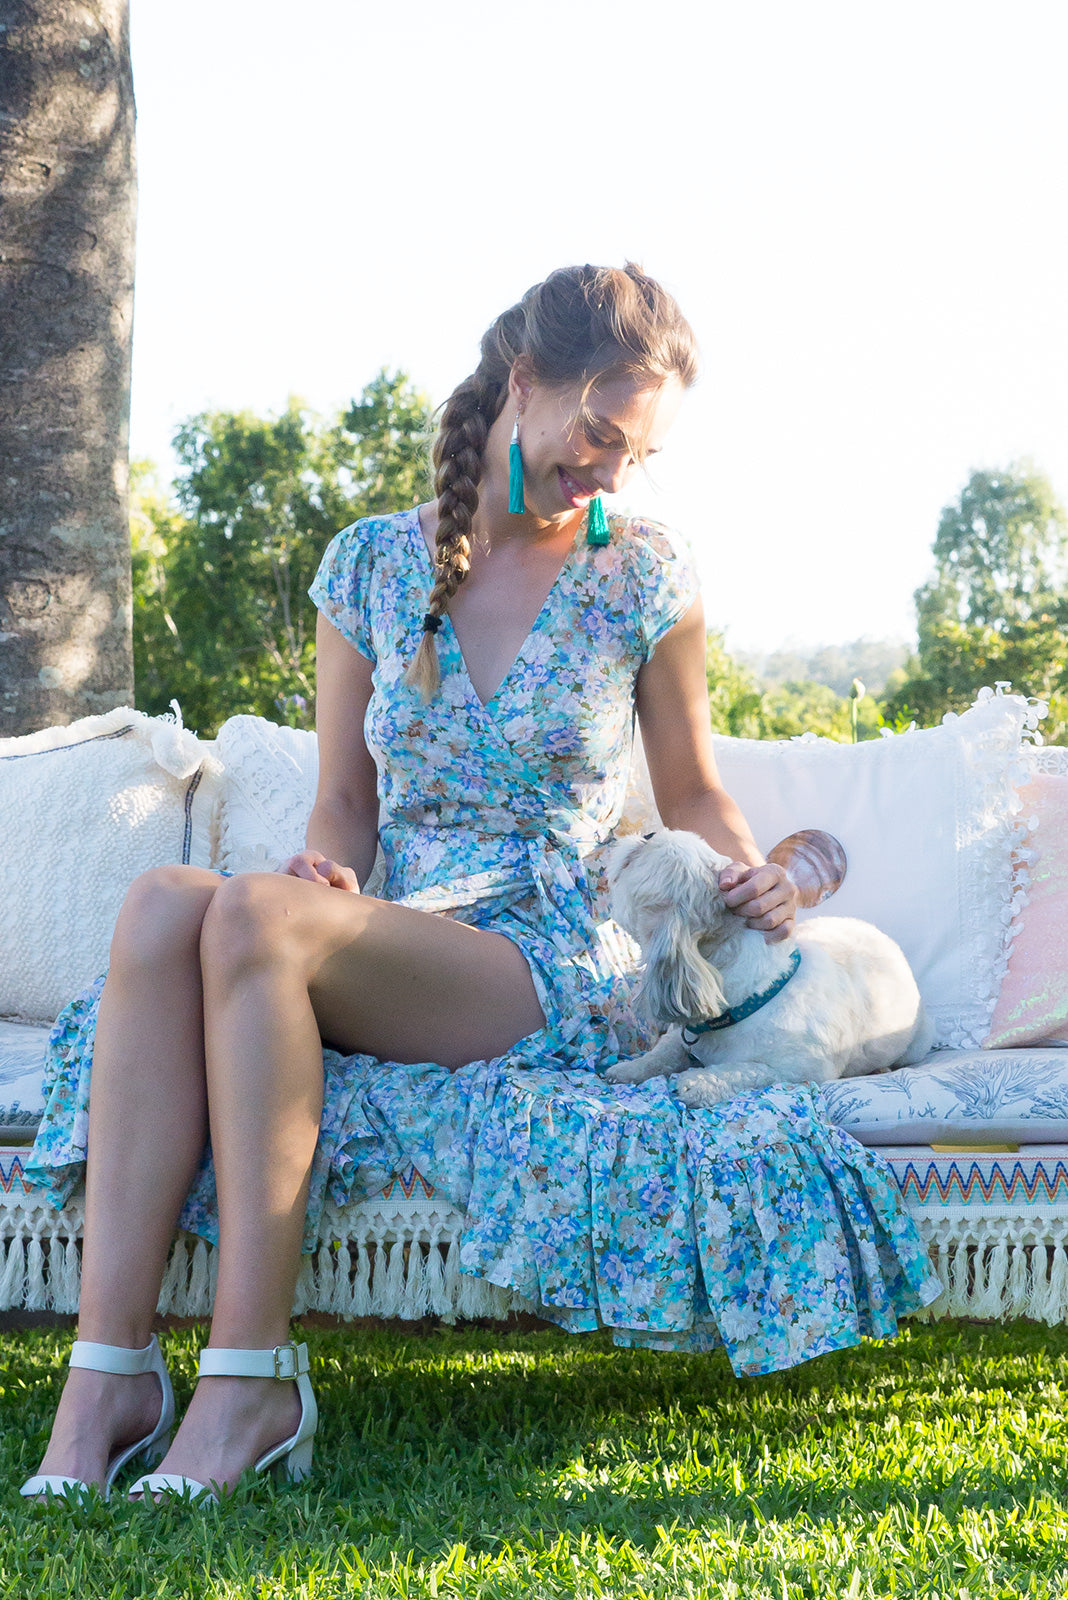 Symphony Breezy Blue Maxi Wrap Dress with a fitted bodice, cap sleeve and frill around the hem in a sweet minty blue floral print, boho style summer dress